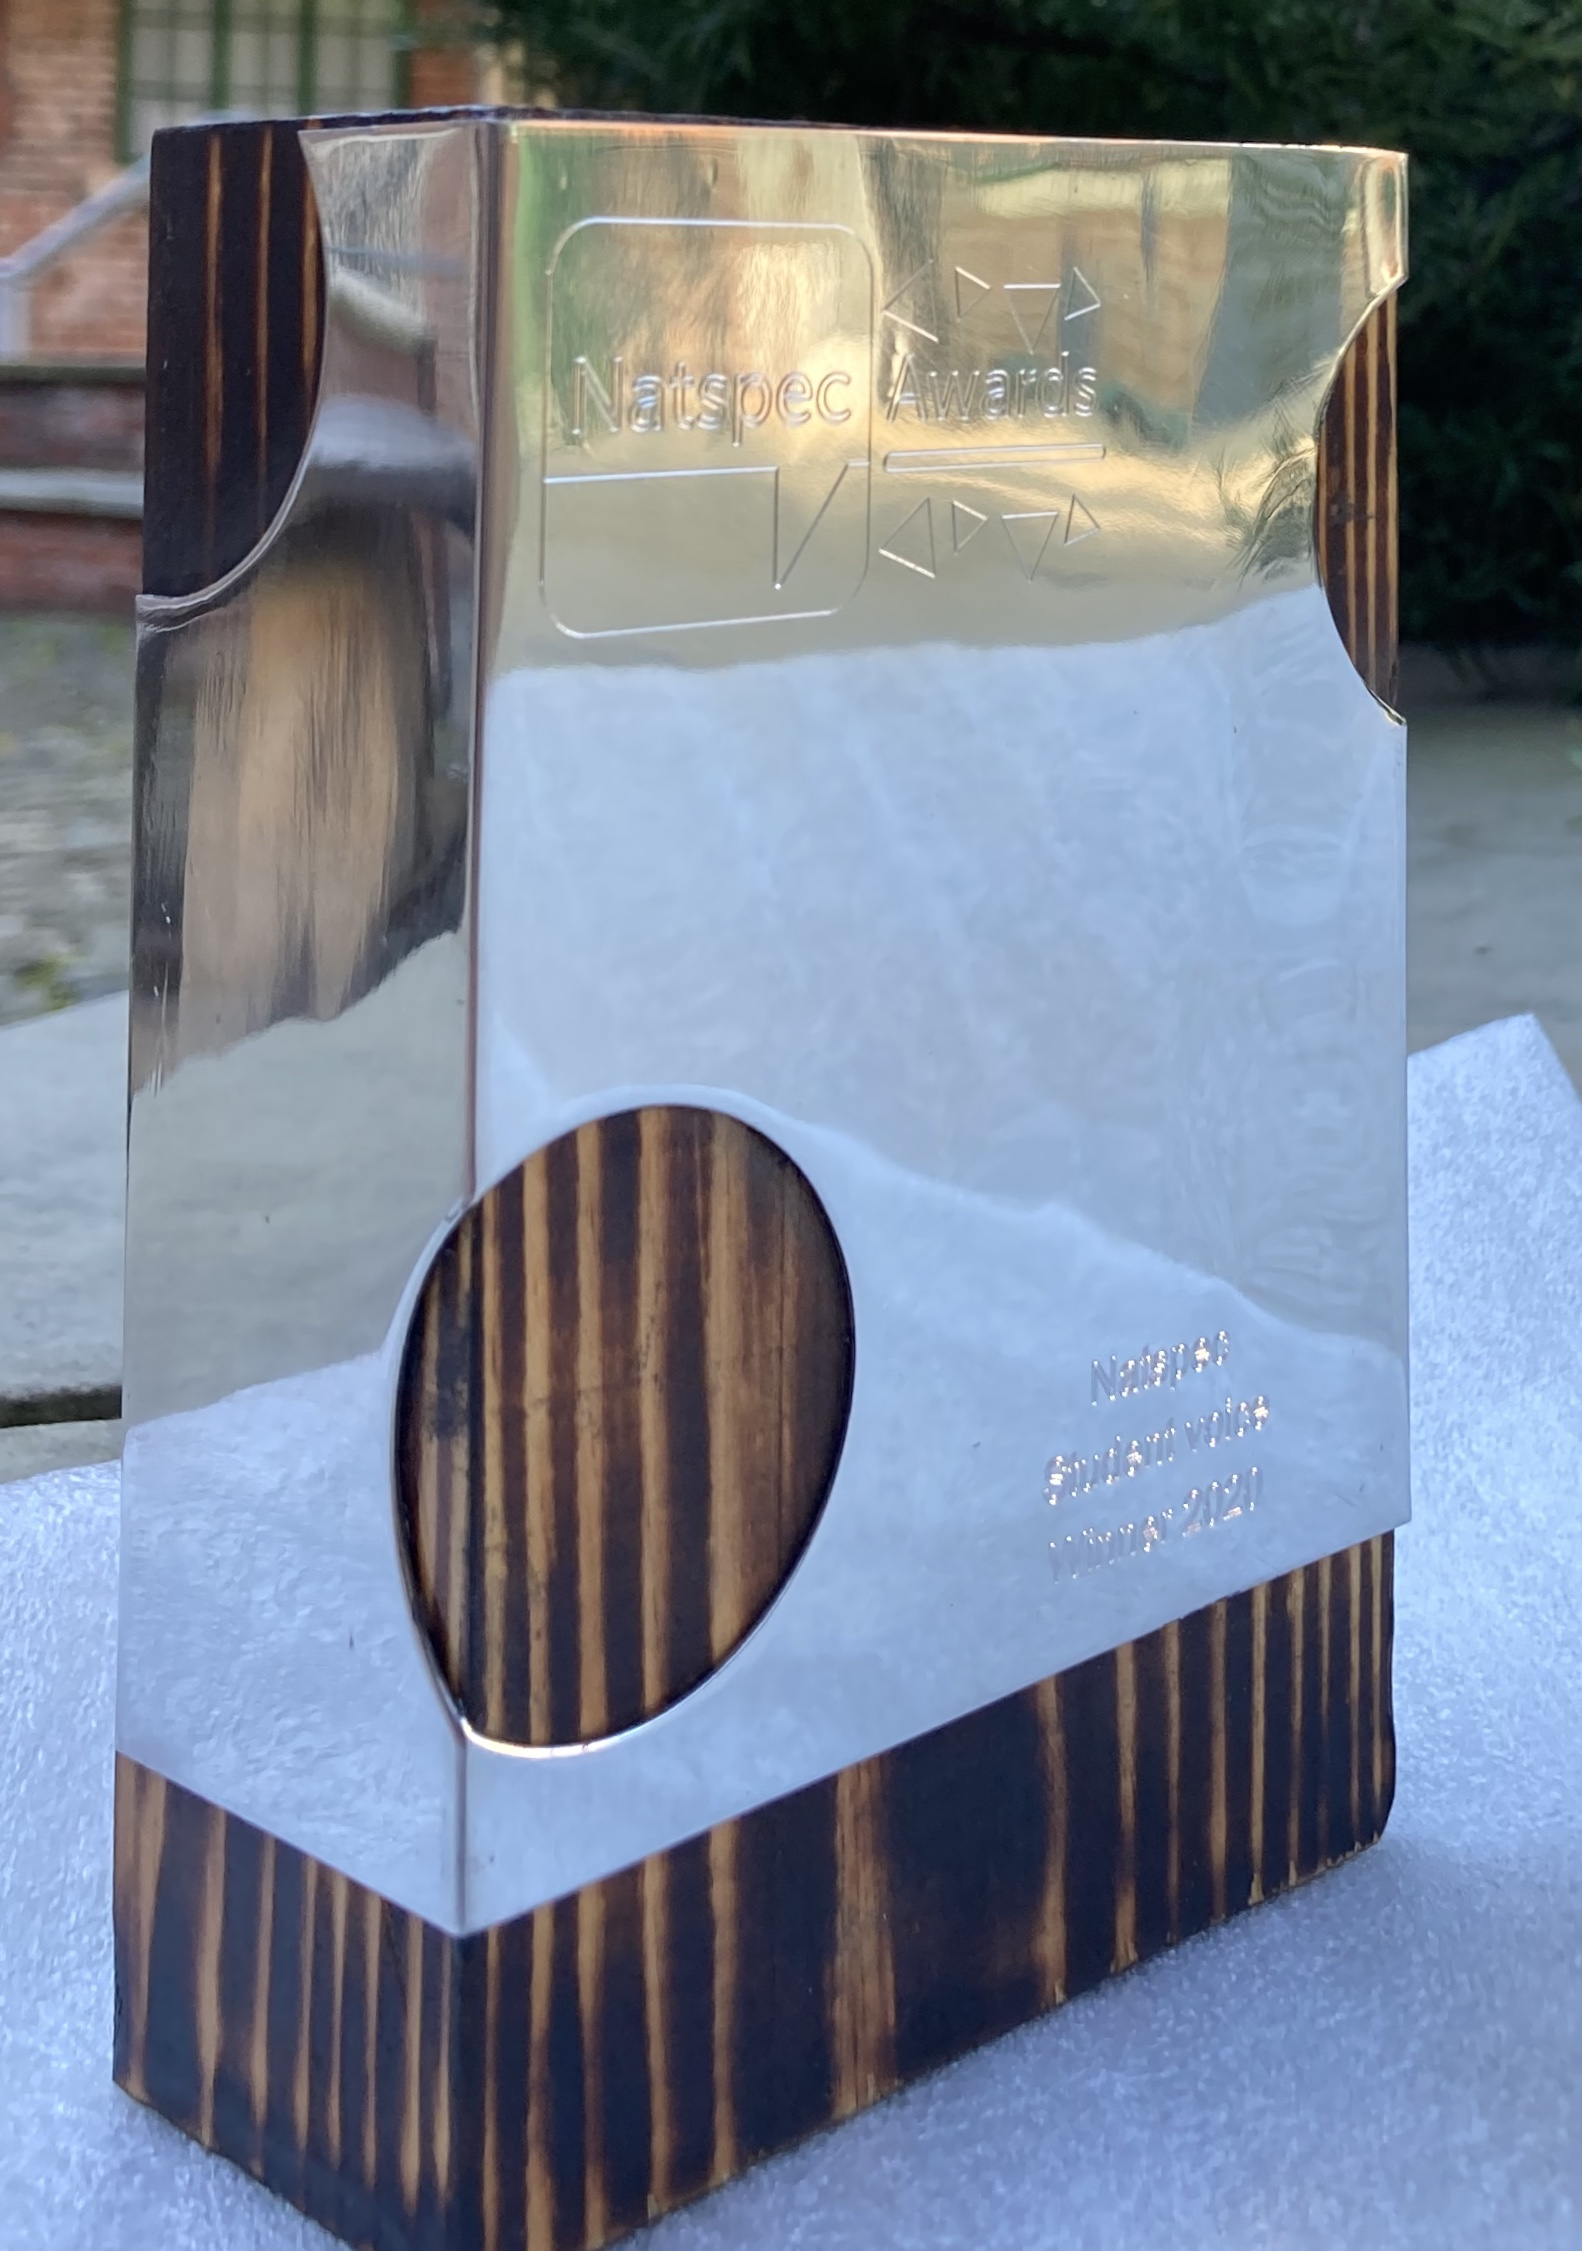 A Natspec 2020 Trophy. It is rectangular in shape, made on wood, with a silver-pewter covering that is engraved covering the top half